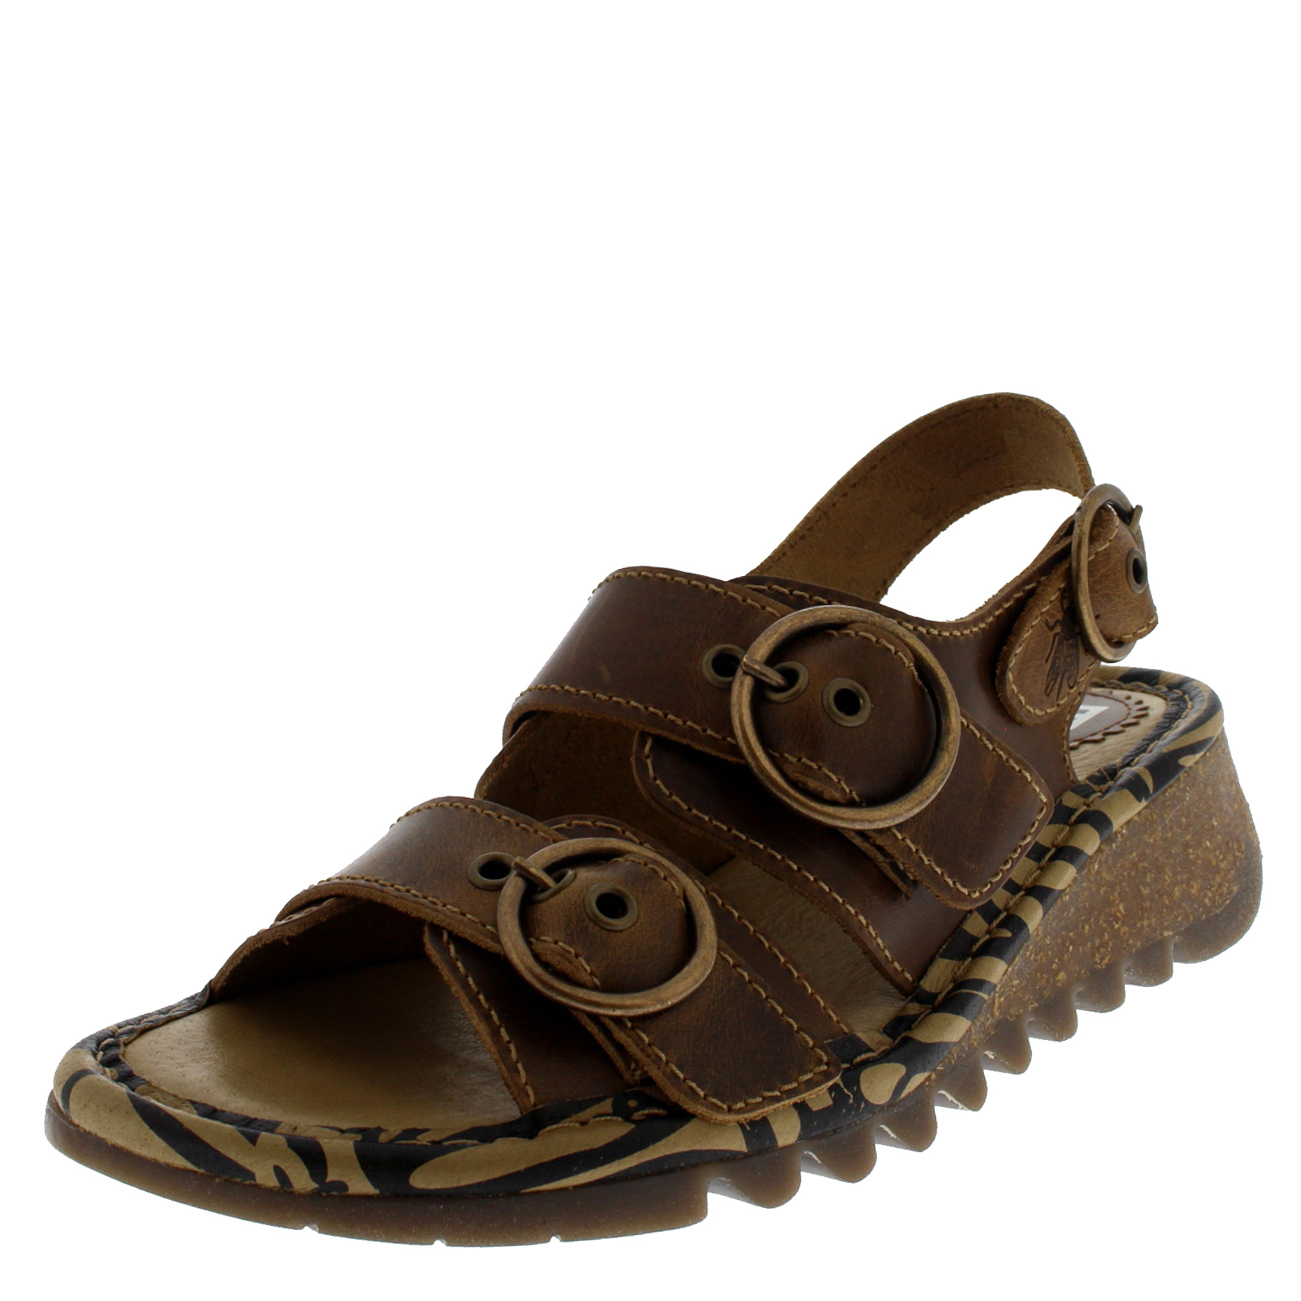 99bca49370e36f Fly London Womens Camel Tear806fly Bridle Sandals UK Sizes 3-8 UK 4 ...